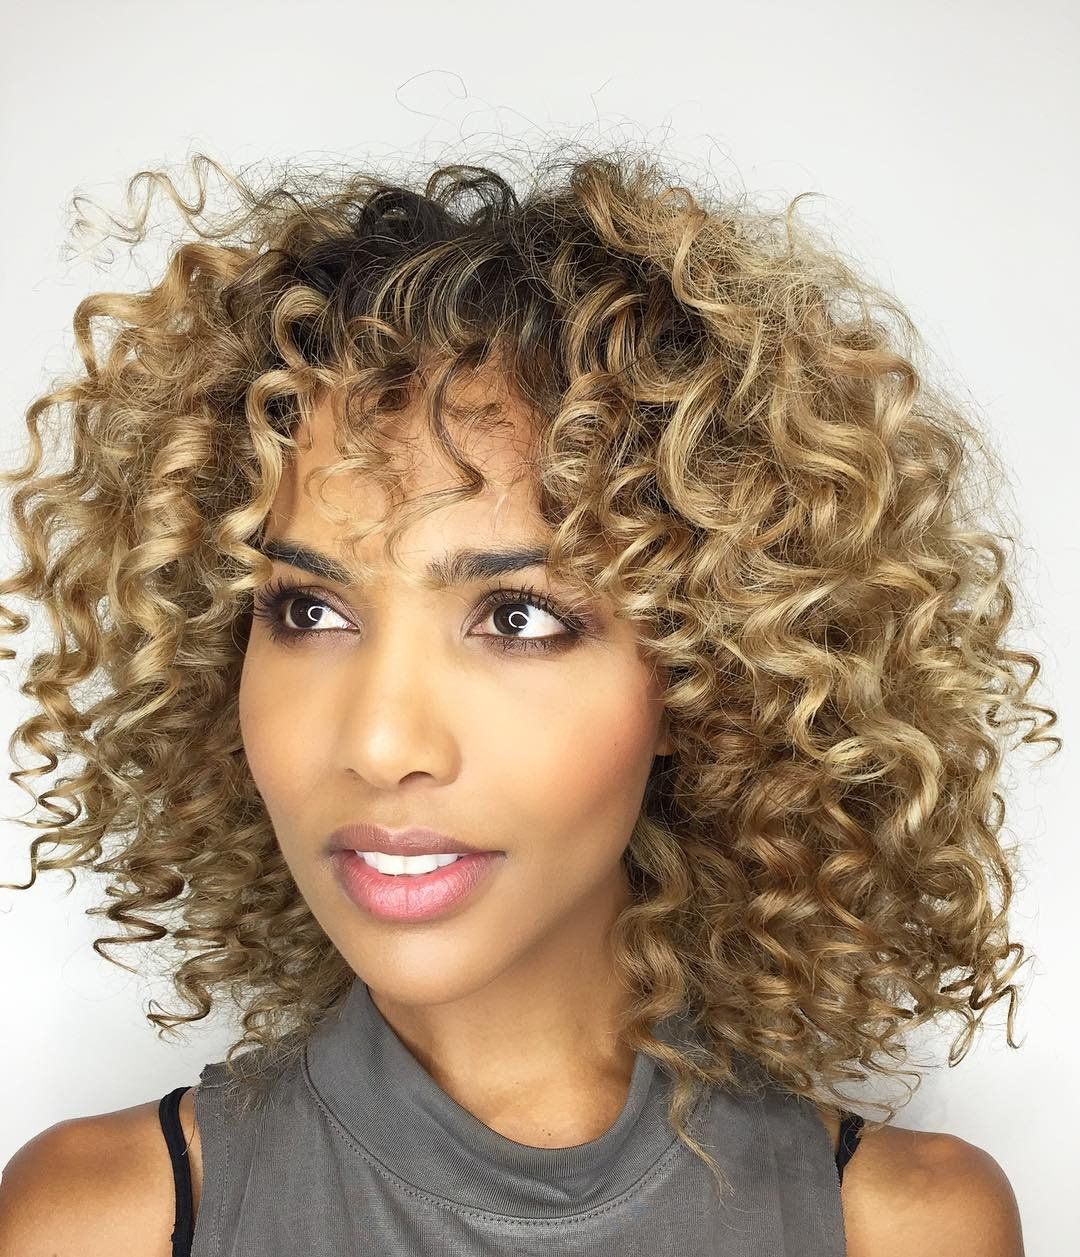 10 Hair Color Ideas For Blondes Curly Hair Styles Naturally Blonde Hair Colour Shades Curly Hair Styles